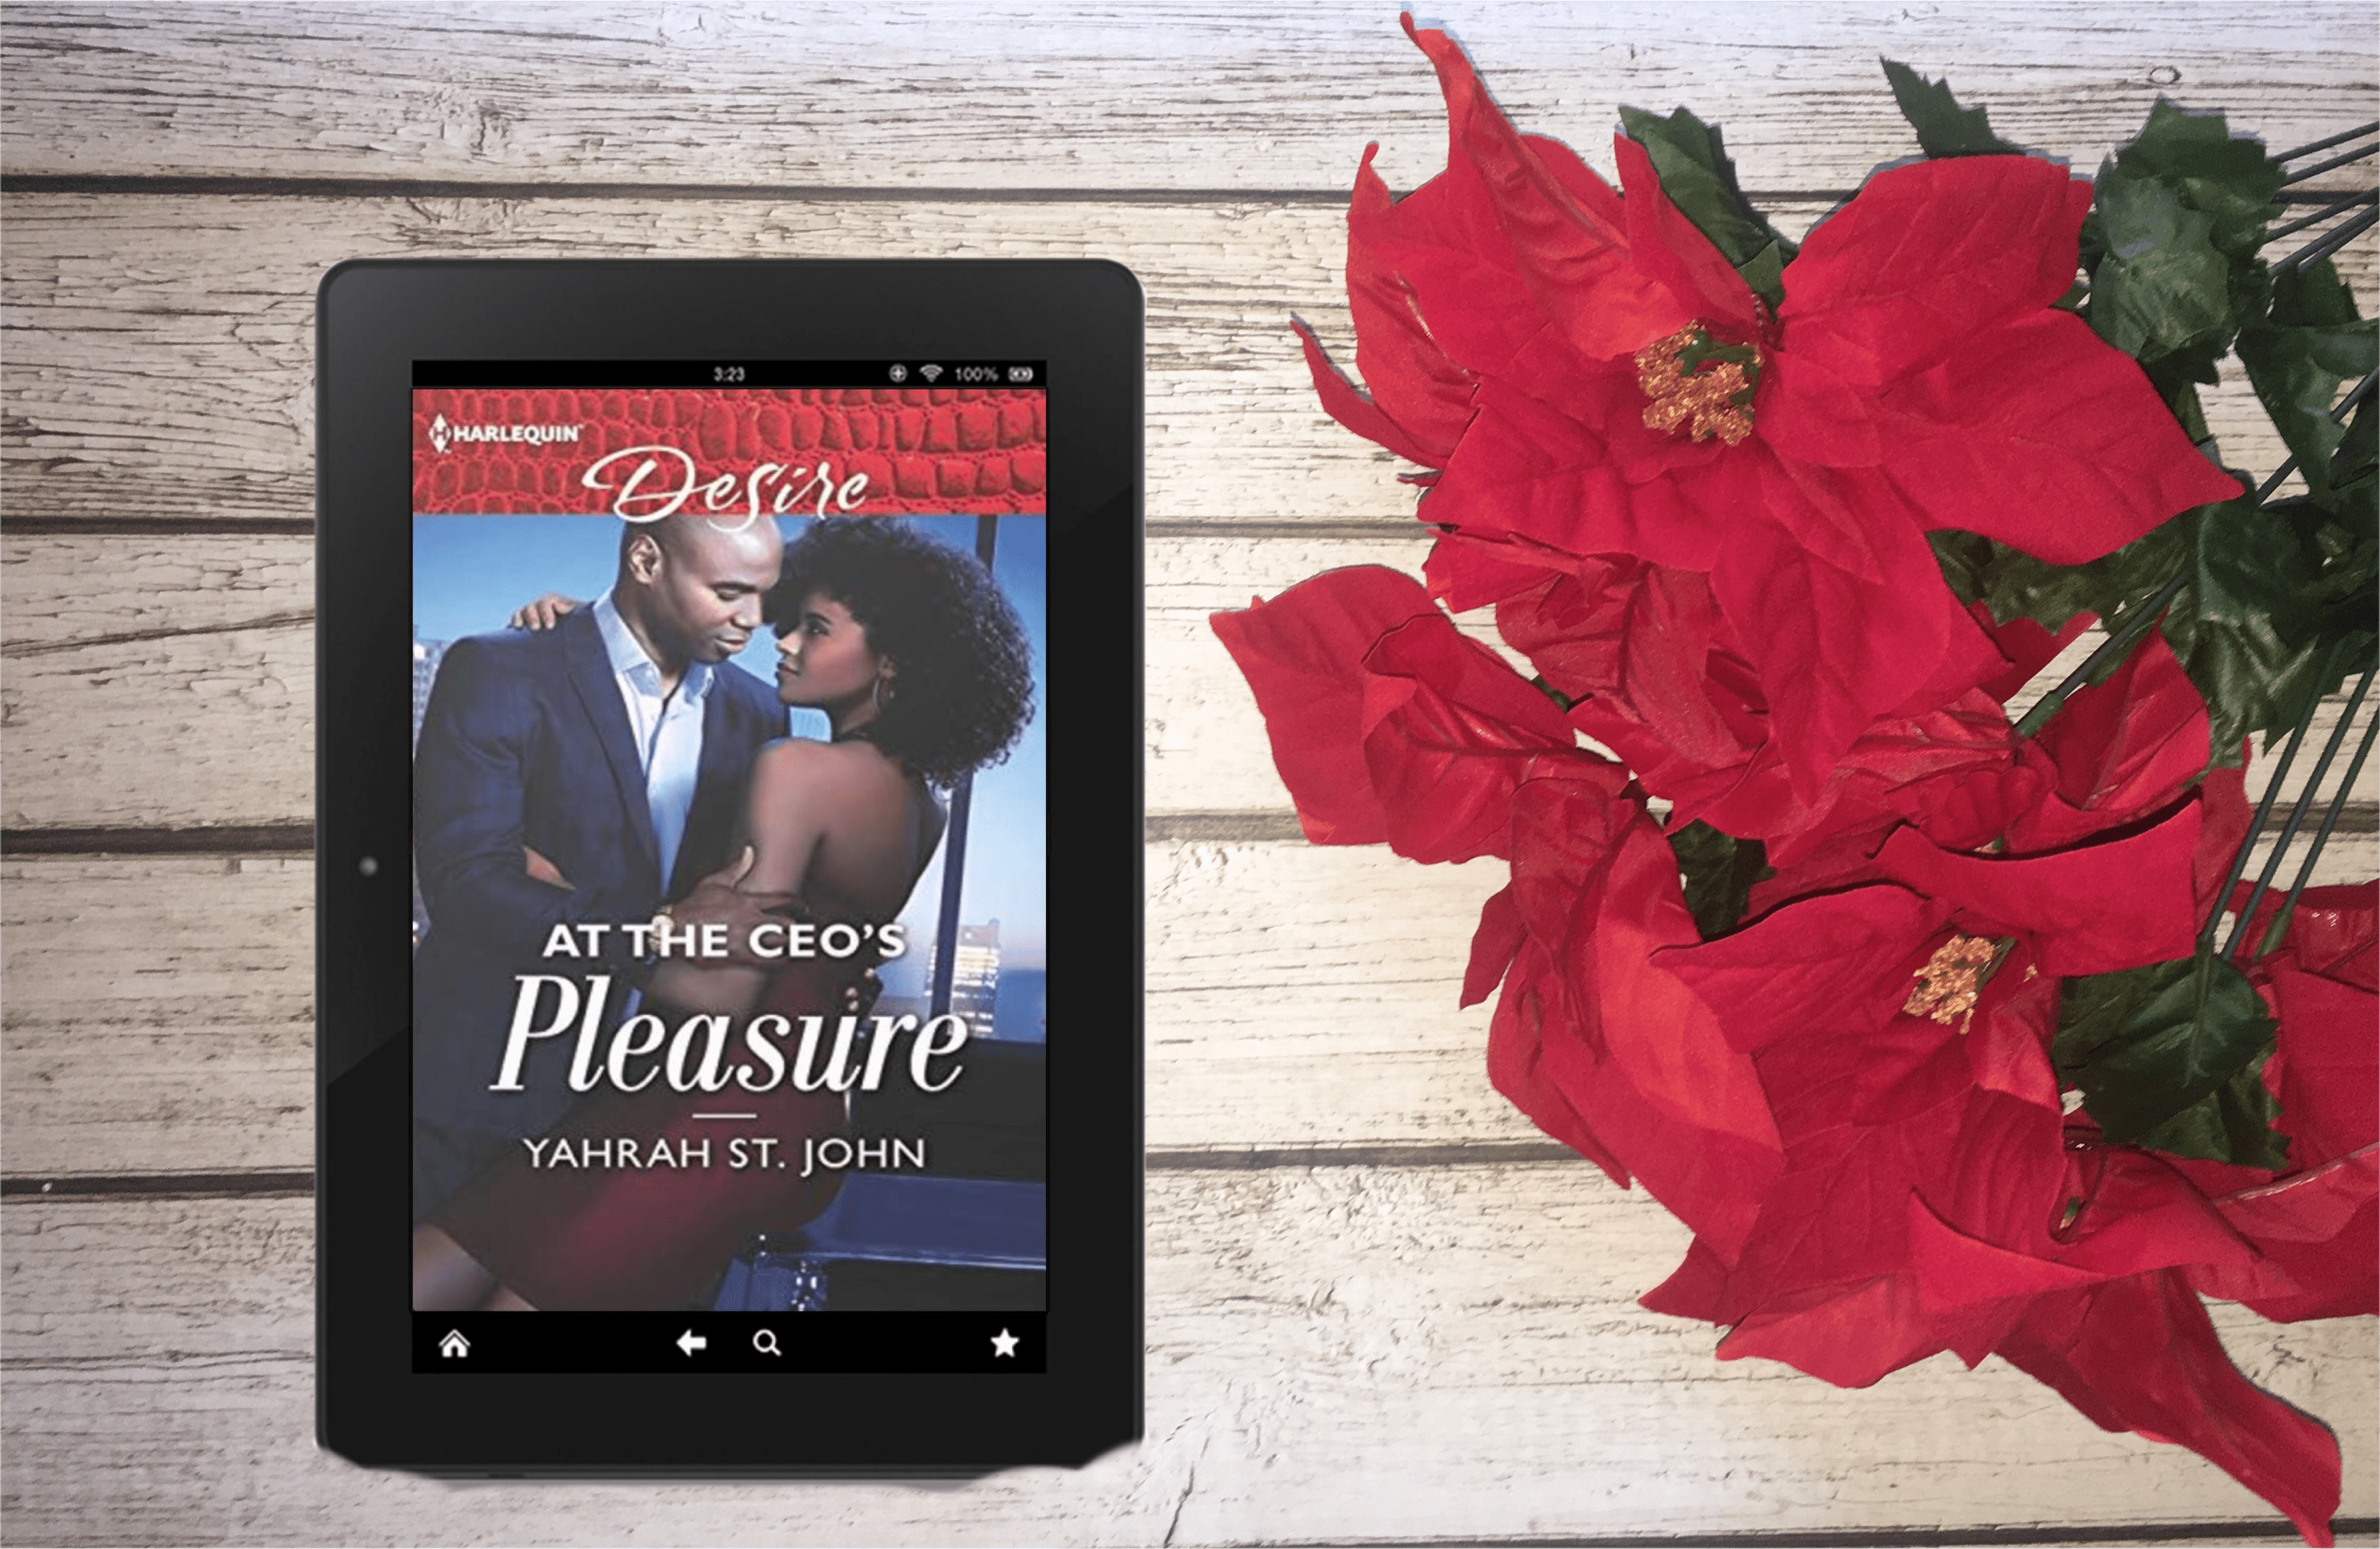 ARC Review: At the CEO's Pleasure (The Stewart Heirs Book 1) by Yahrah St. John